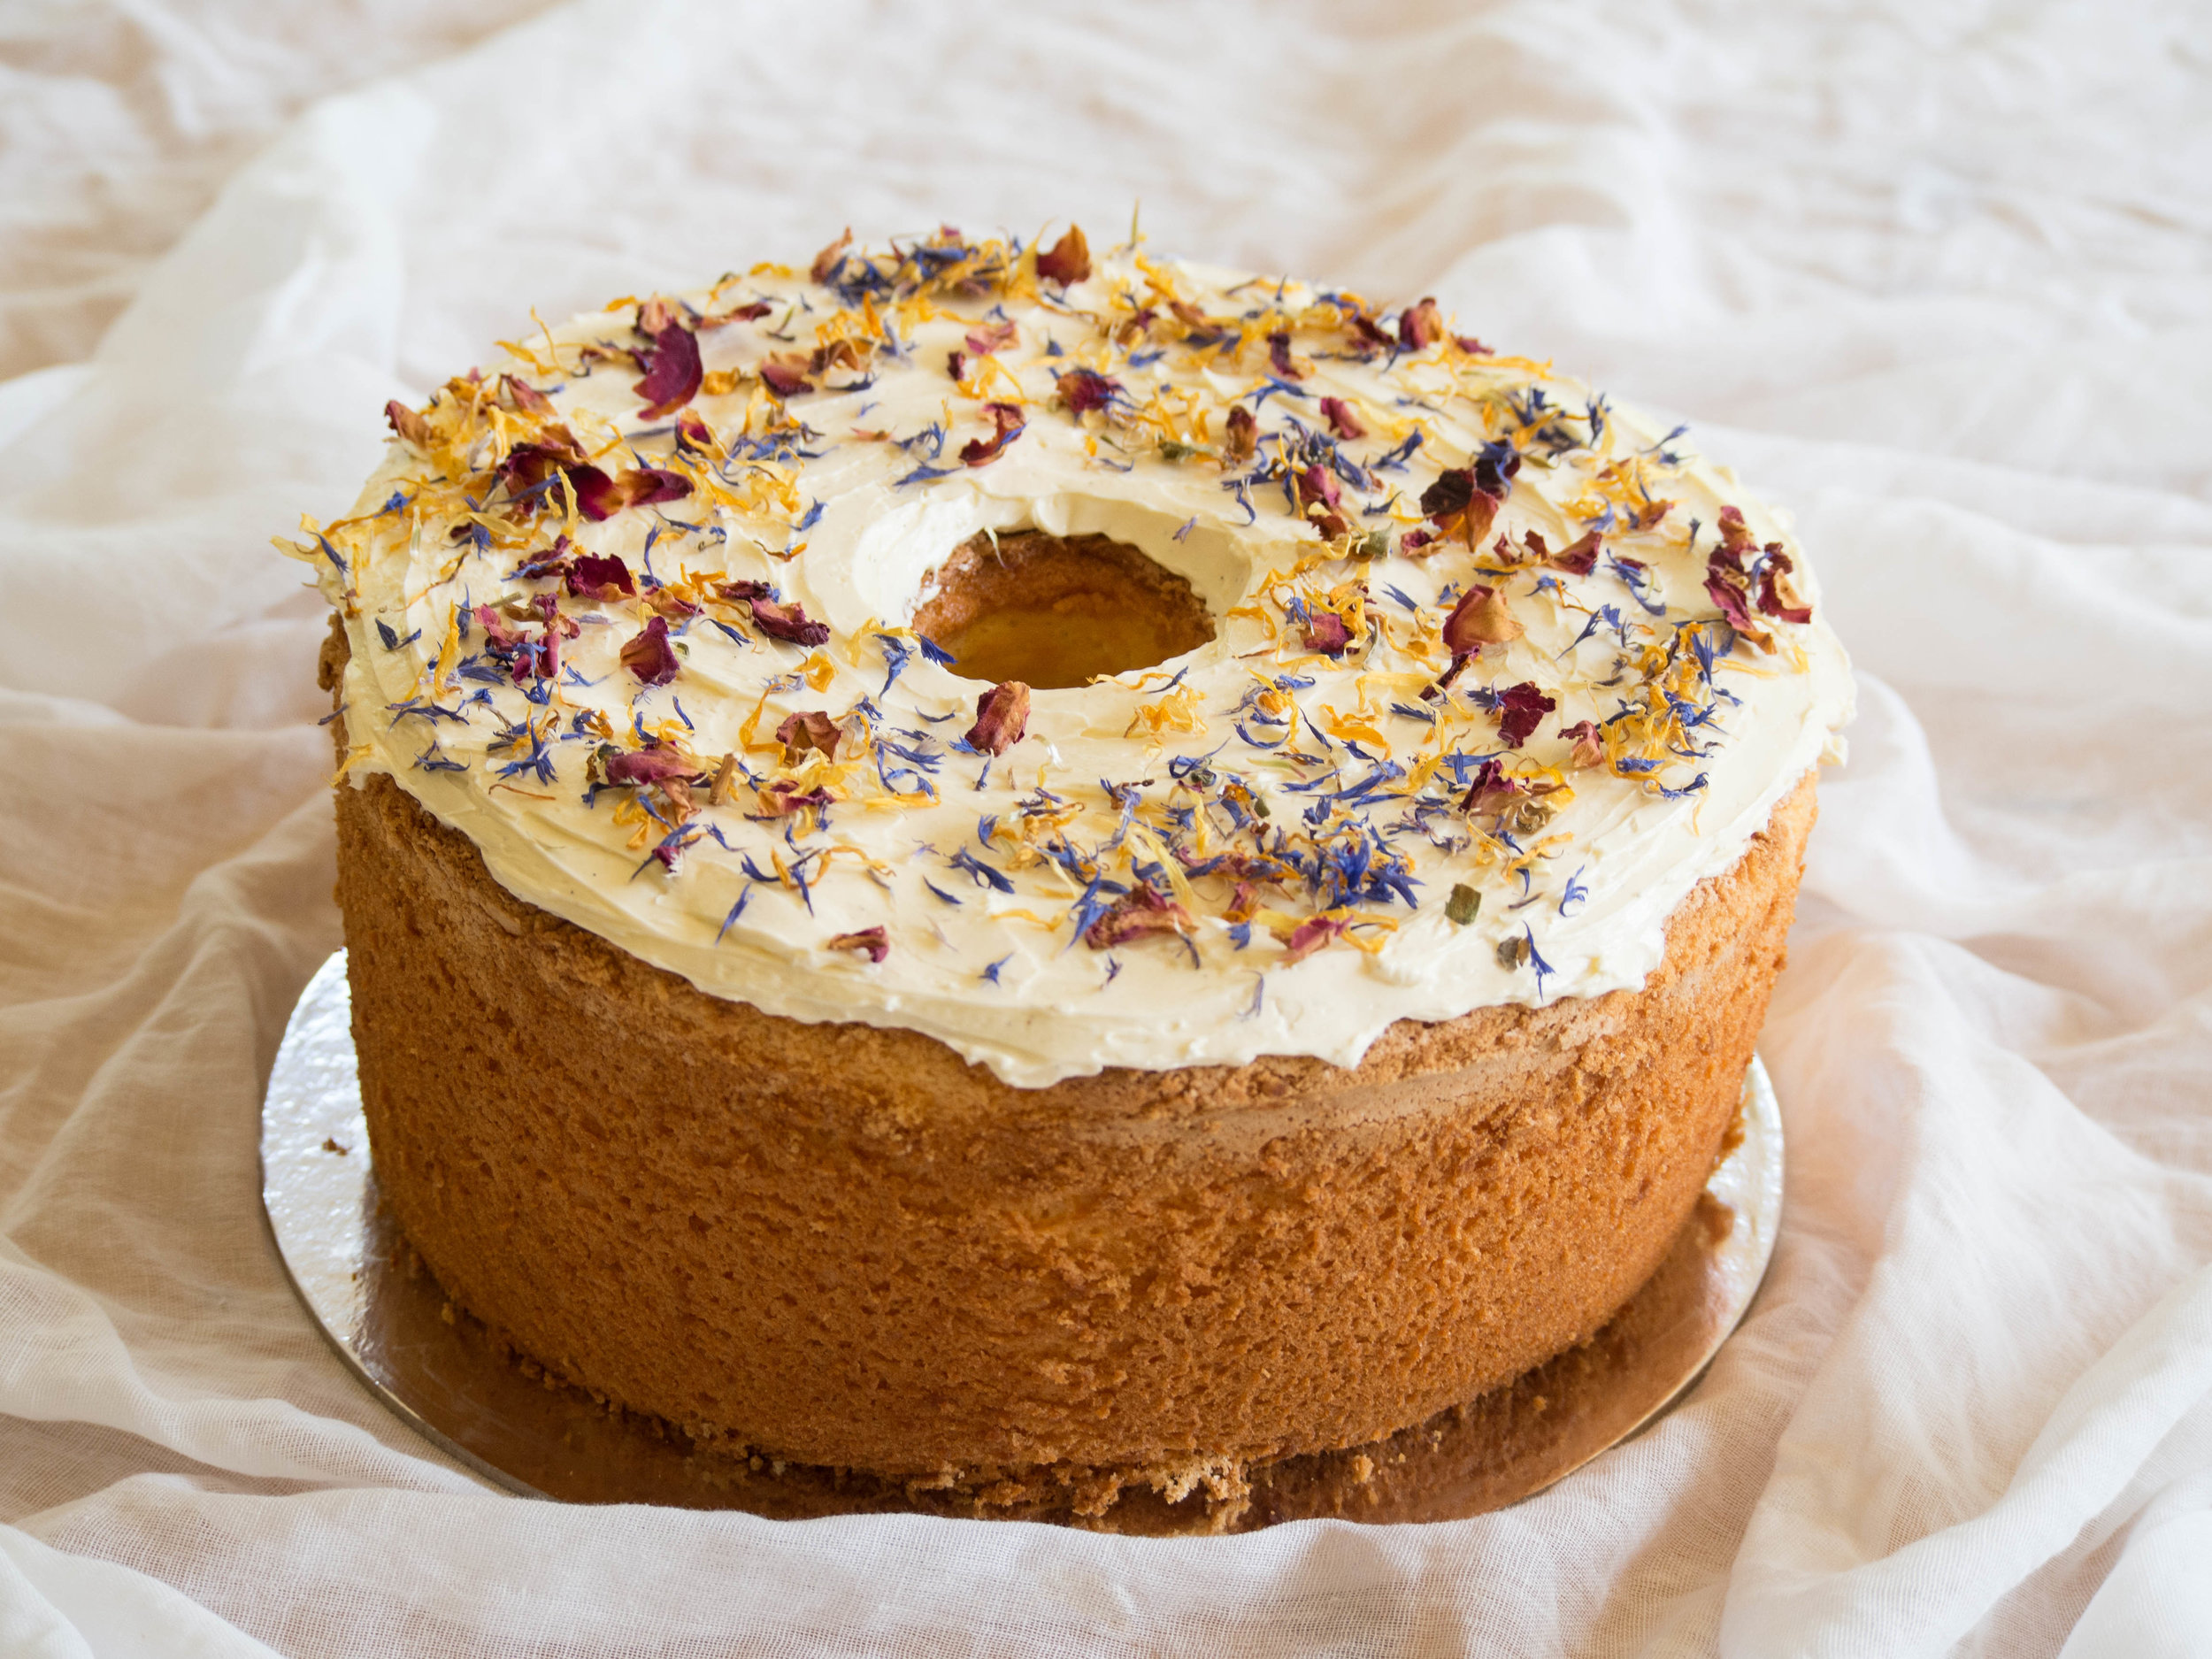 Custard Chiffon Cake with Swiss Meringue Buttercream & Dried Edible Flowers